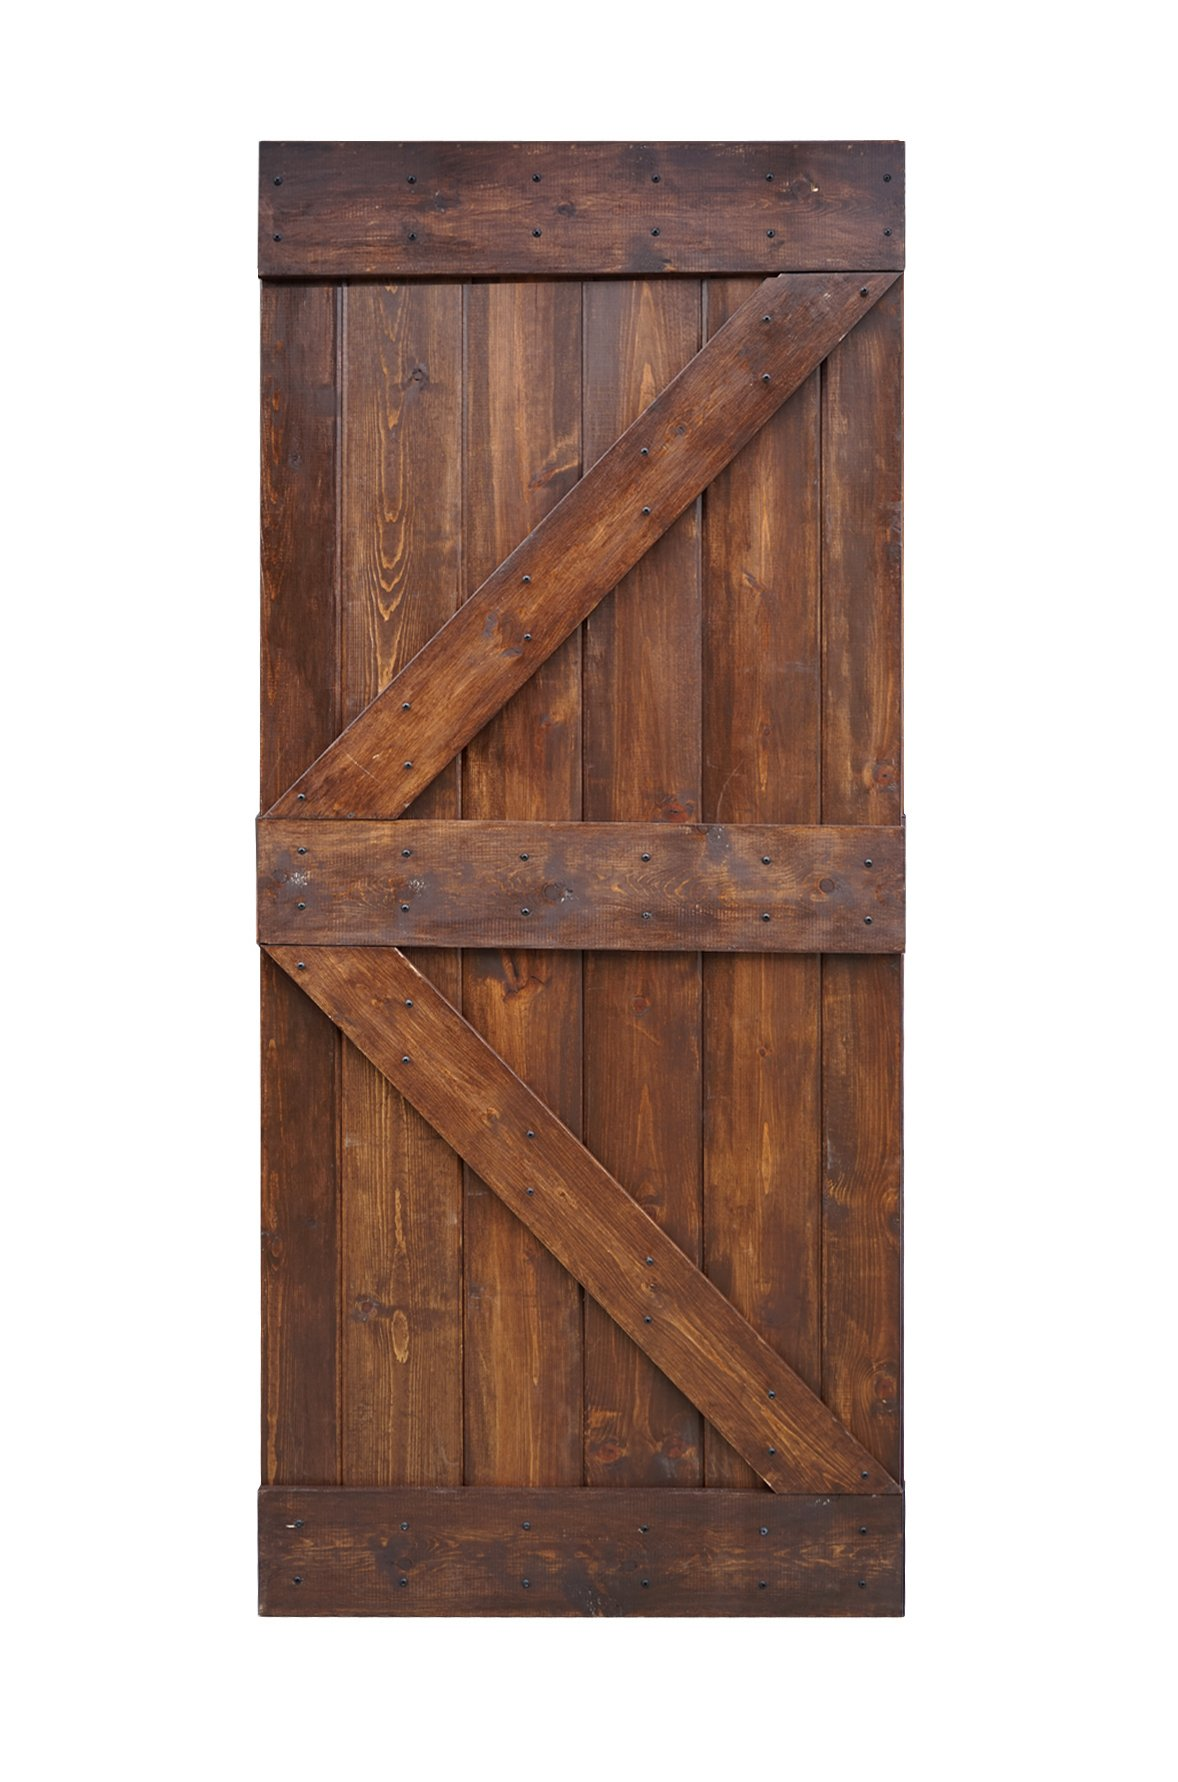 WELLHOME 36inX84in K Series DIY Knotty Pine Sliding Barn Door Slab (Dark Walnut) by WELLHOME